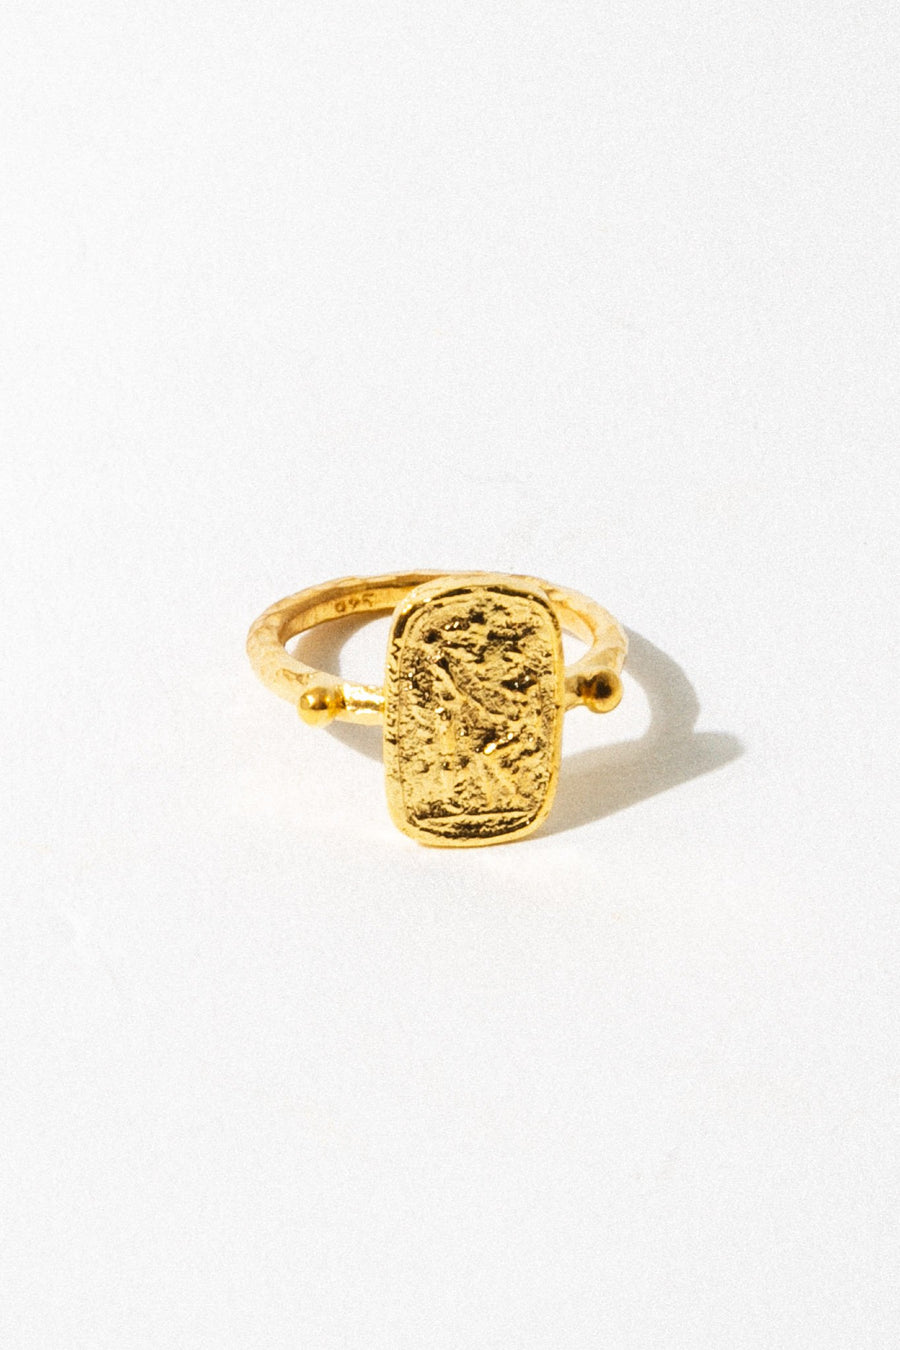 CAPRIXUS Jewelry Ancient Greek Signet Ring